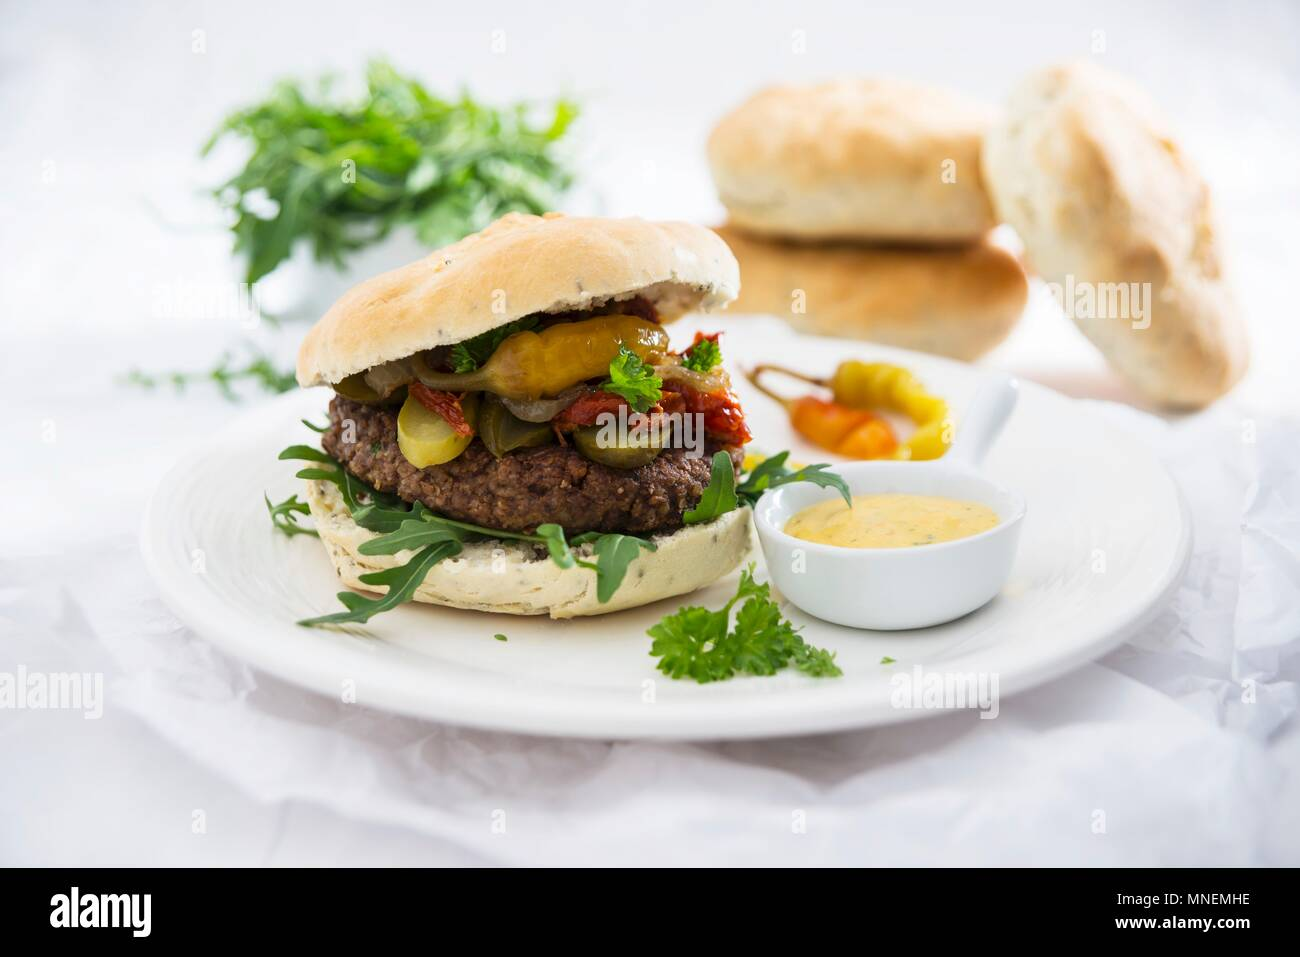 Vegan burgers with chia buns and a swede and bean patty - Stock Image